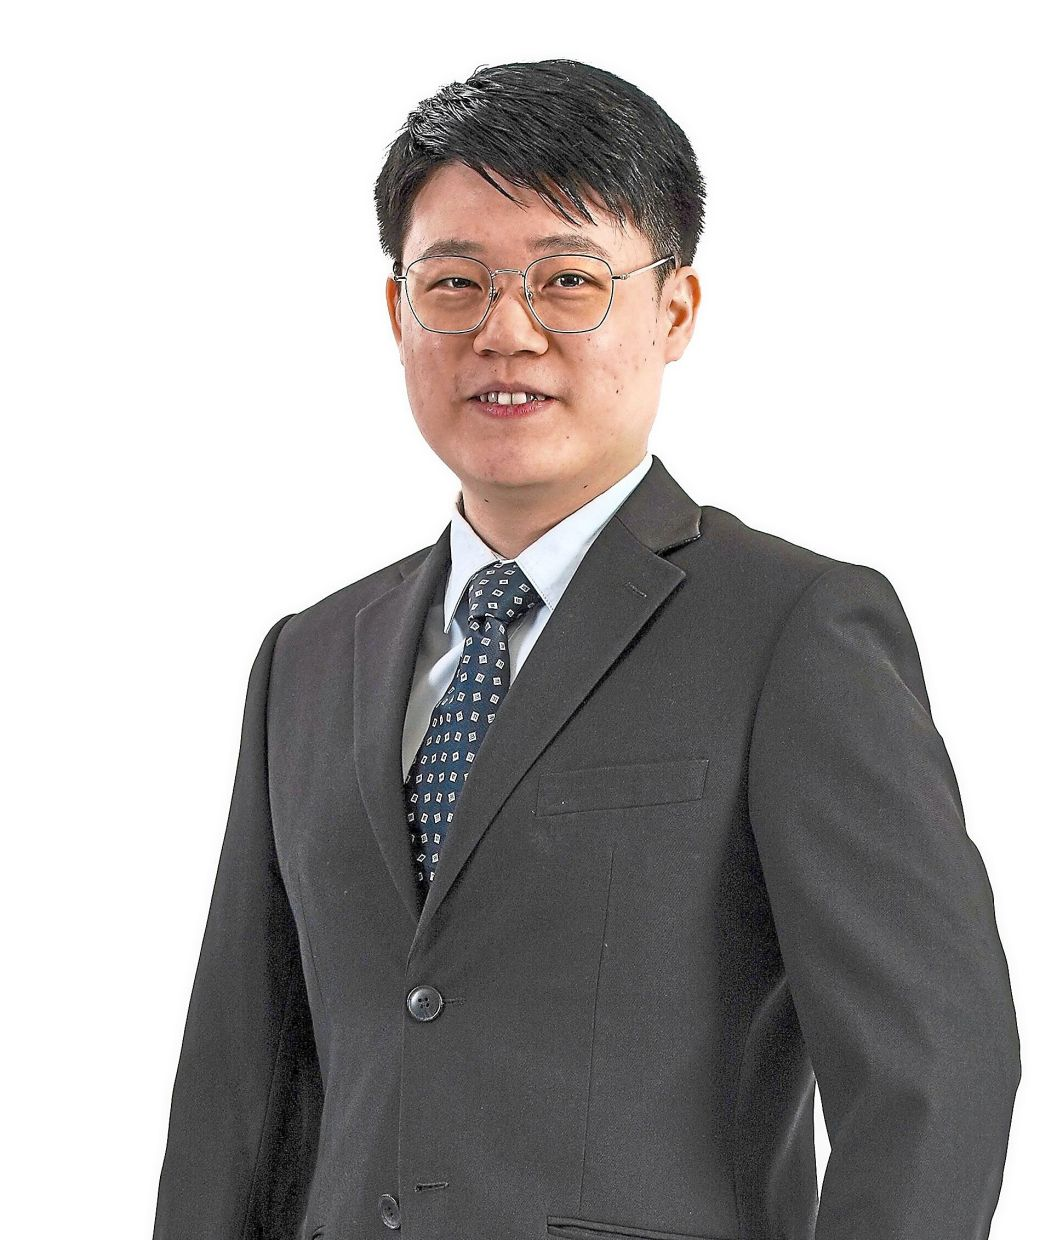 RAM Rating Services Bhd senior economist Woon Khai Jhek said GFCF is expected to pick up this year.